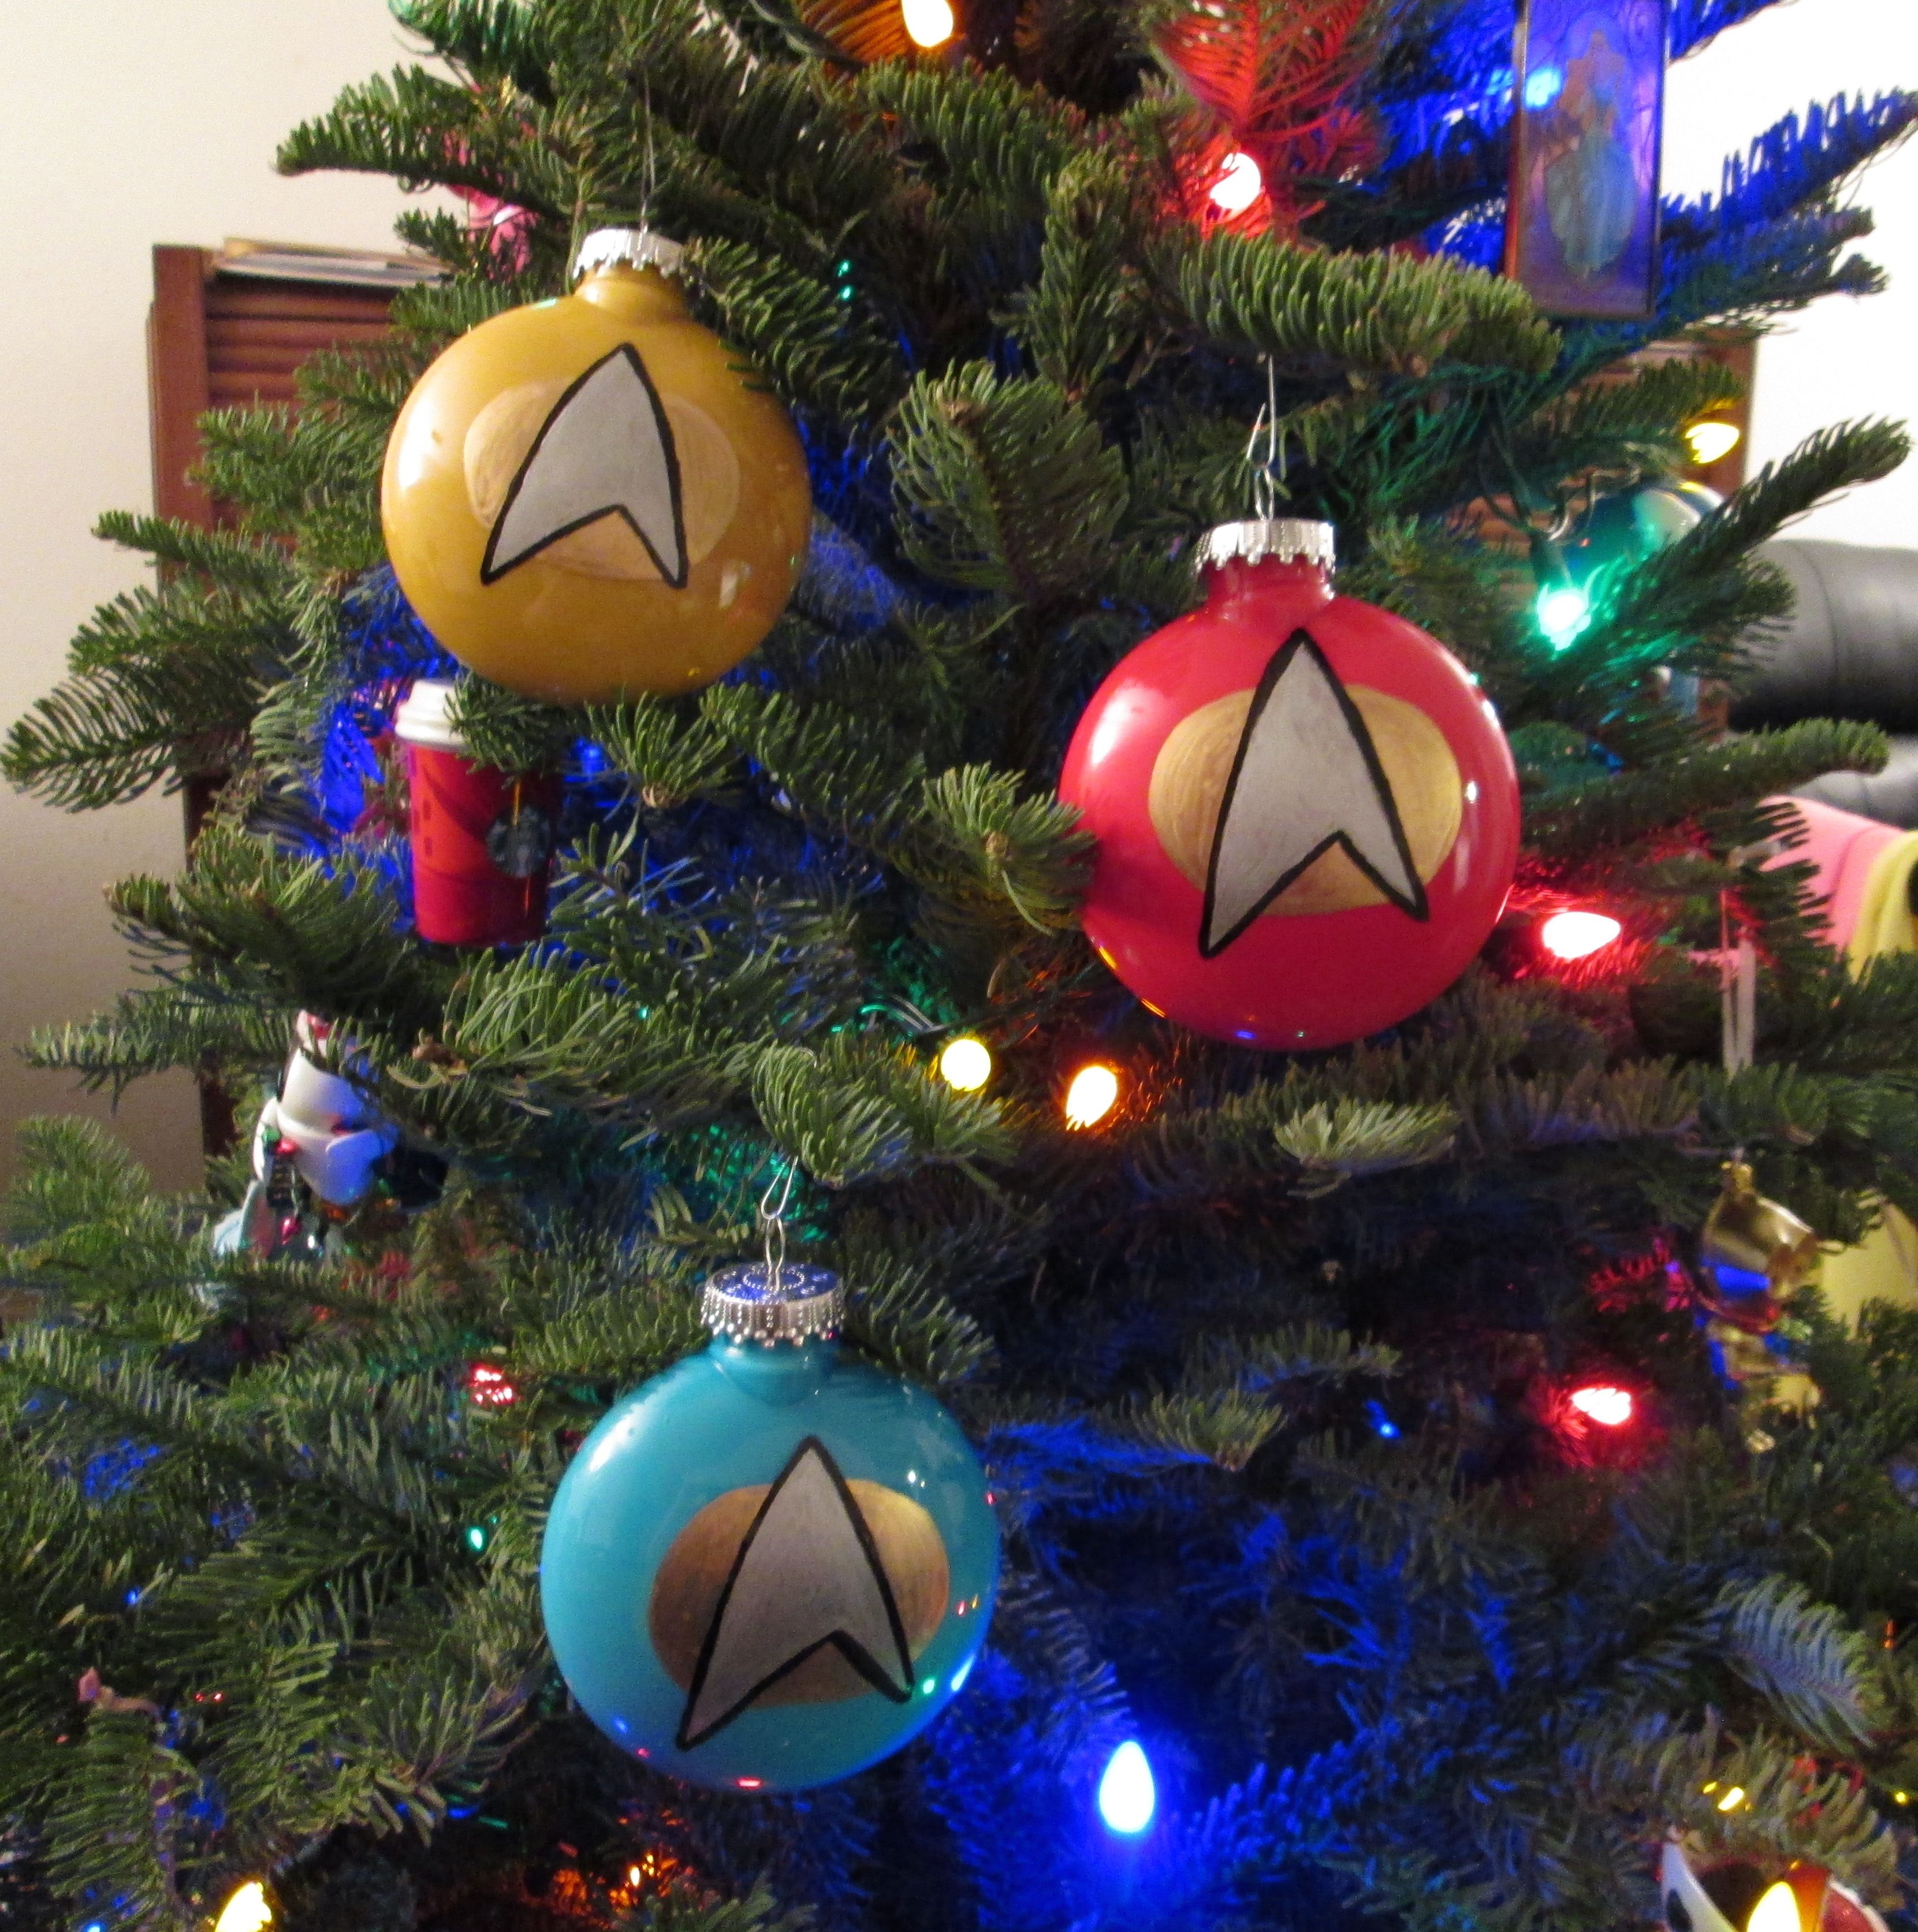 Diy christmas decorations and gifts - Diy December Star Trek The Next Generation Ornaments